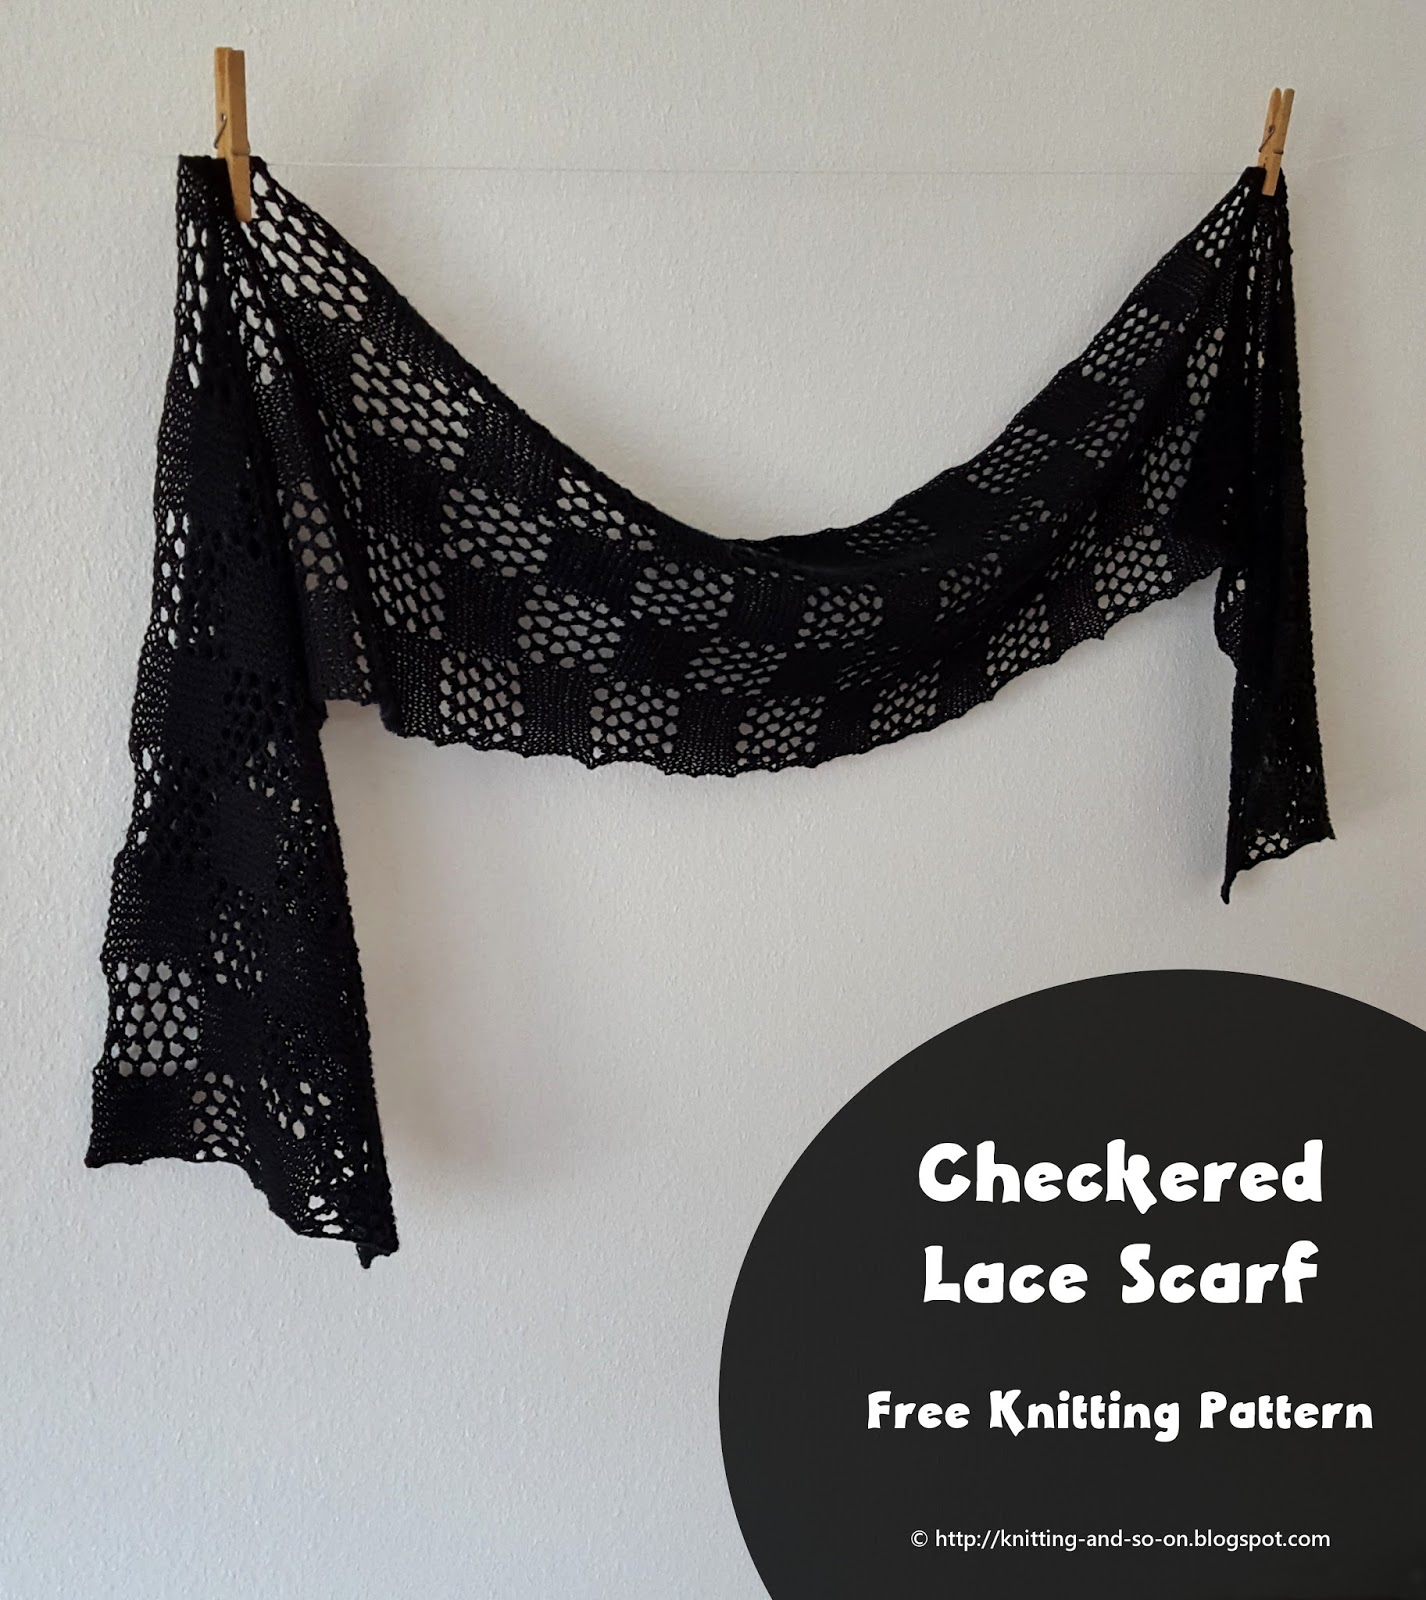 Knitting and so on: Checkered Lace Scarf